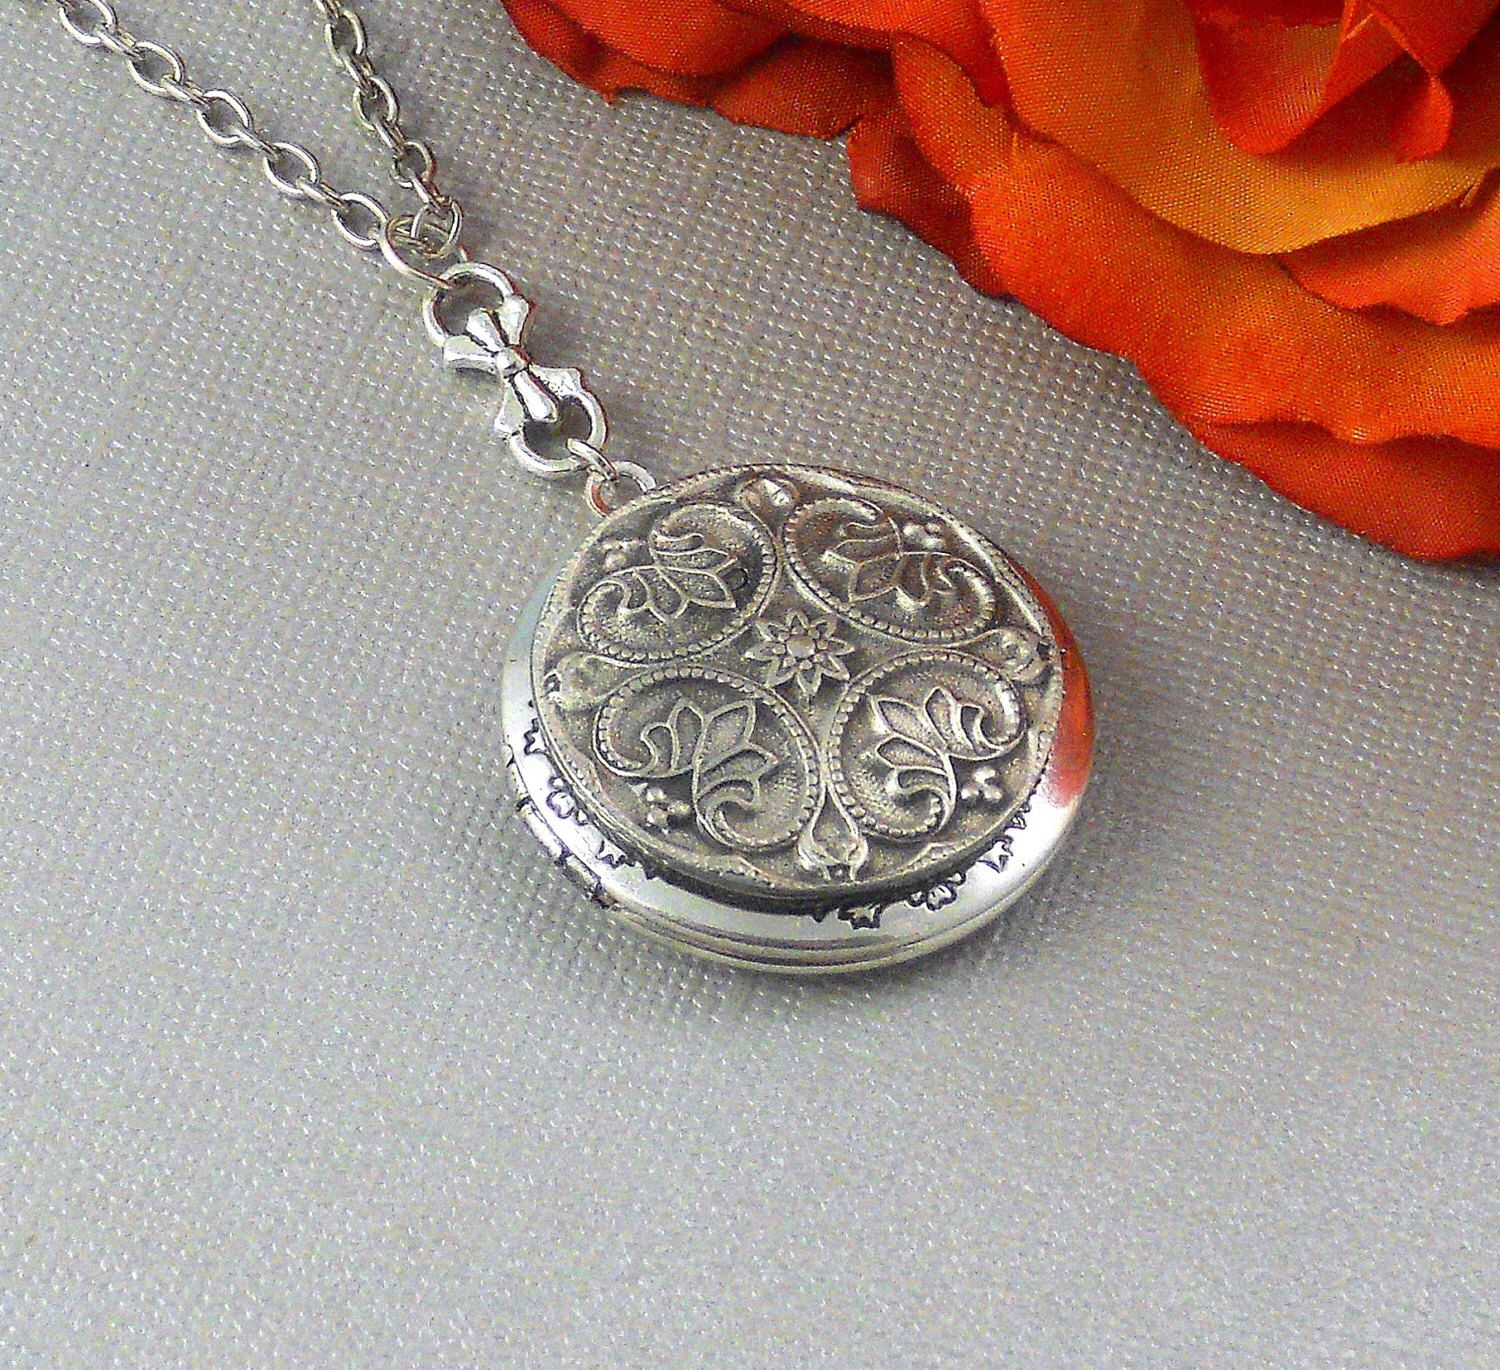 knot wedding irish lockets trinity triquetra jewelry triangle scottish pin celtic silver necklace locket